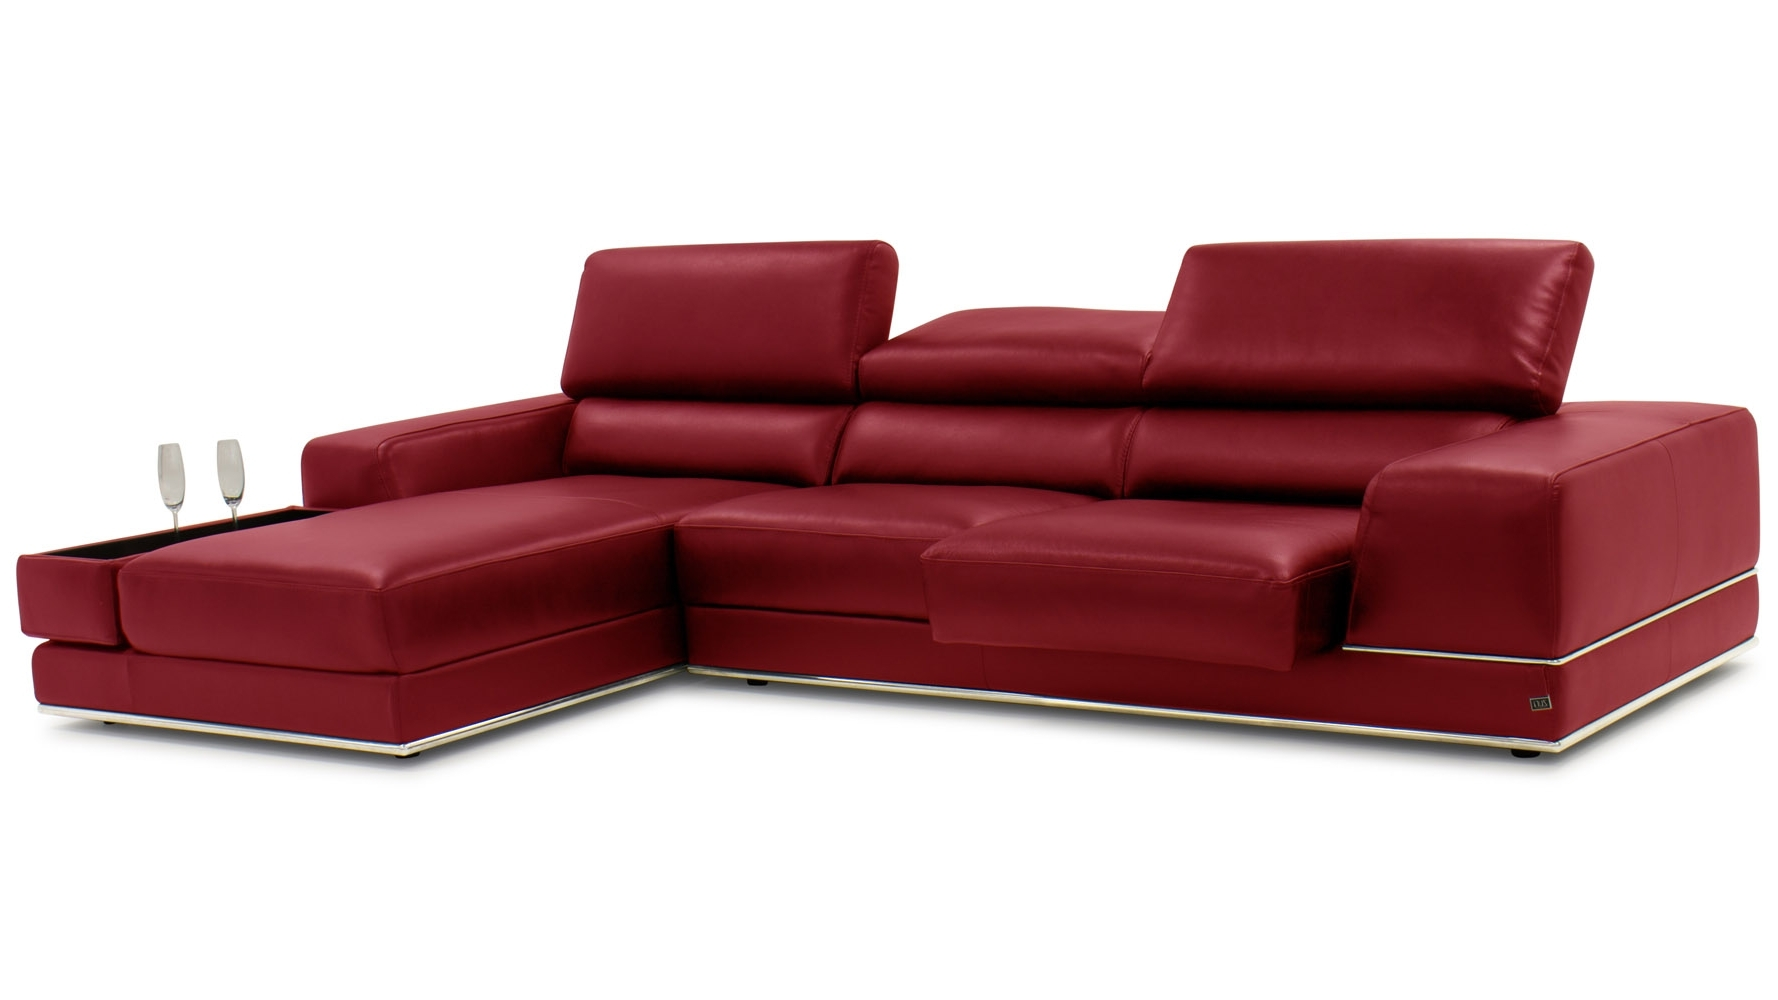 Zuri Furniture With Regard To Most Recent Red Leather Chaises (View 12 of 15)